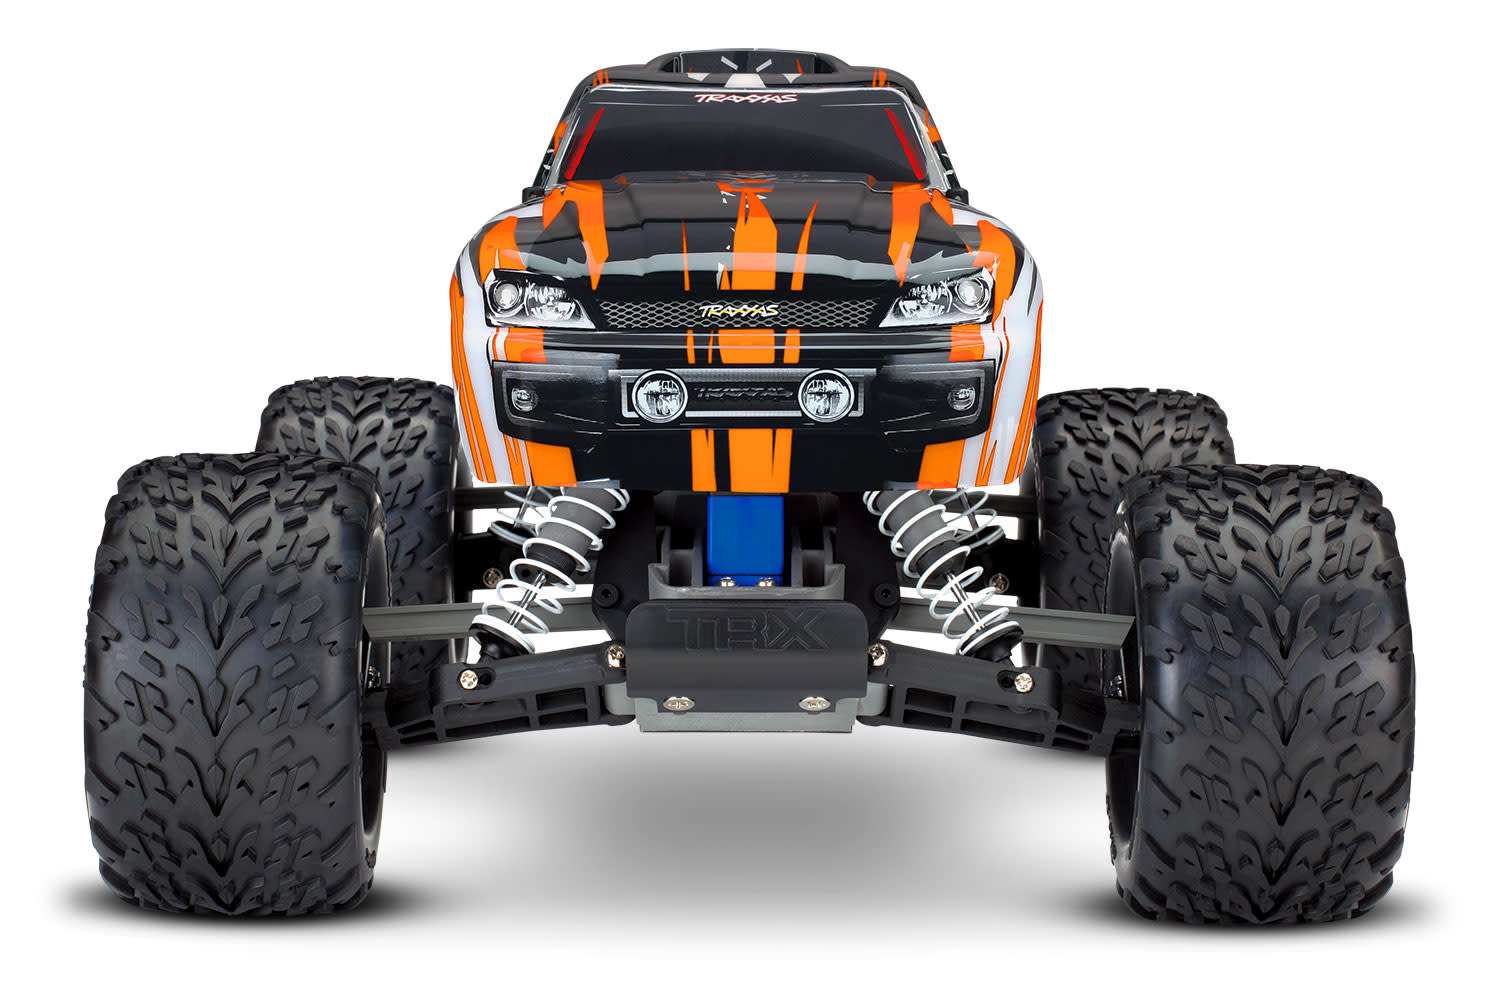 Traxxas Stampede XL-5 TQ (incl battery/charger), Orange TRX36054-1O-3